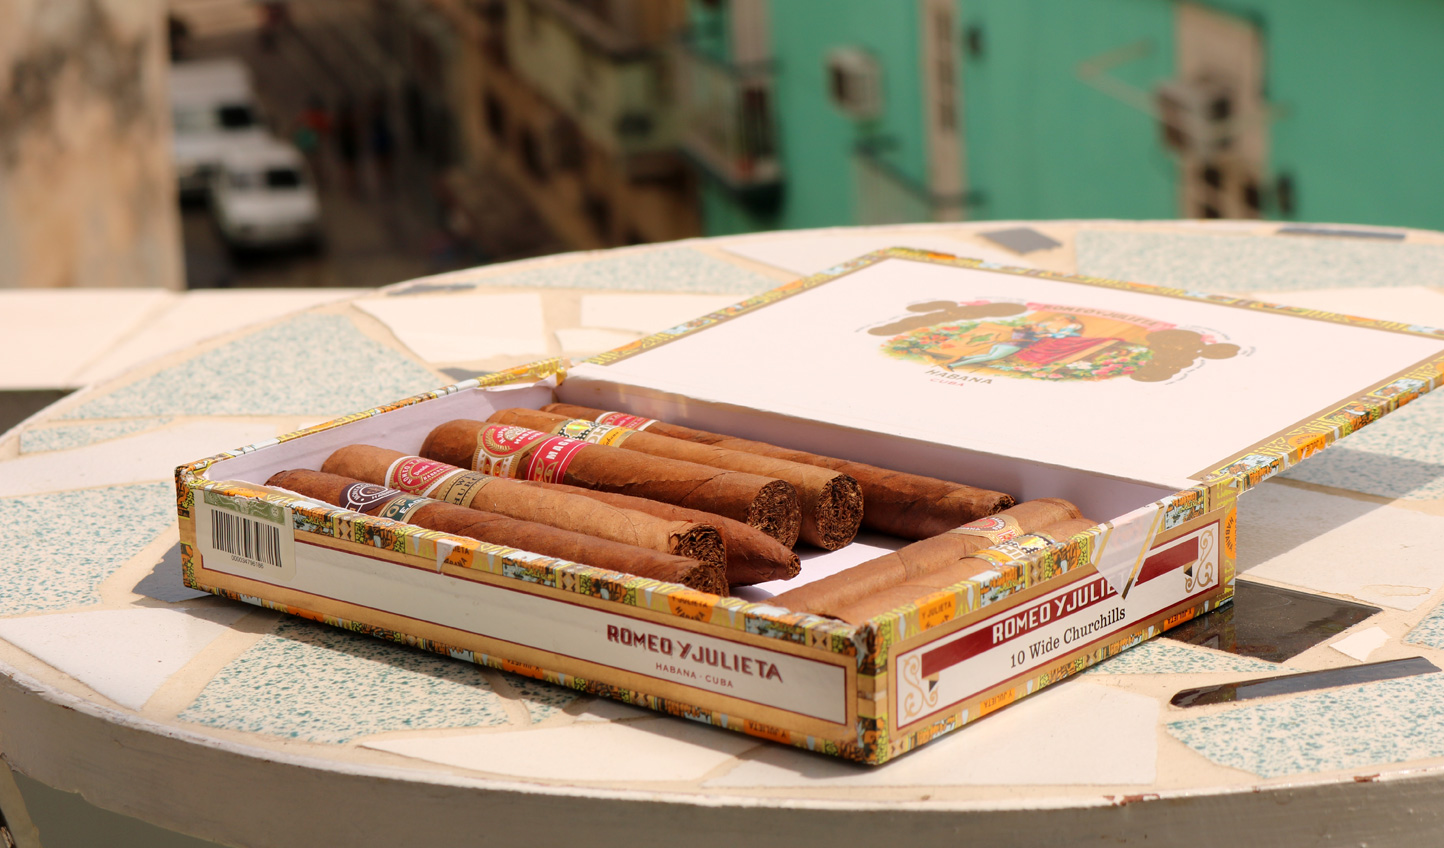 Watch the skilled craftsmen carefully roll cigars in Havana